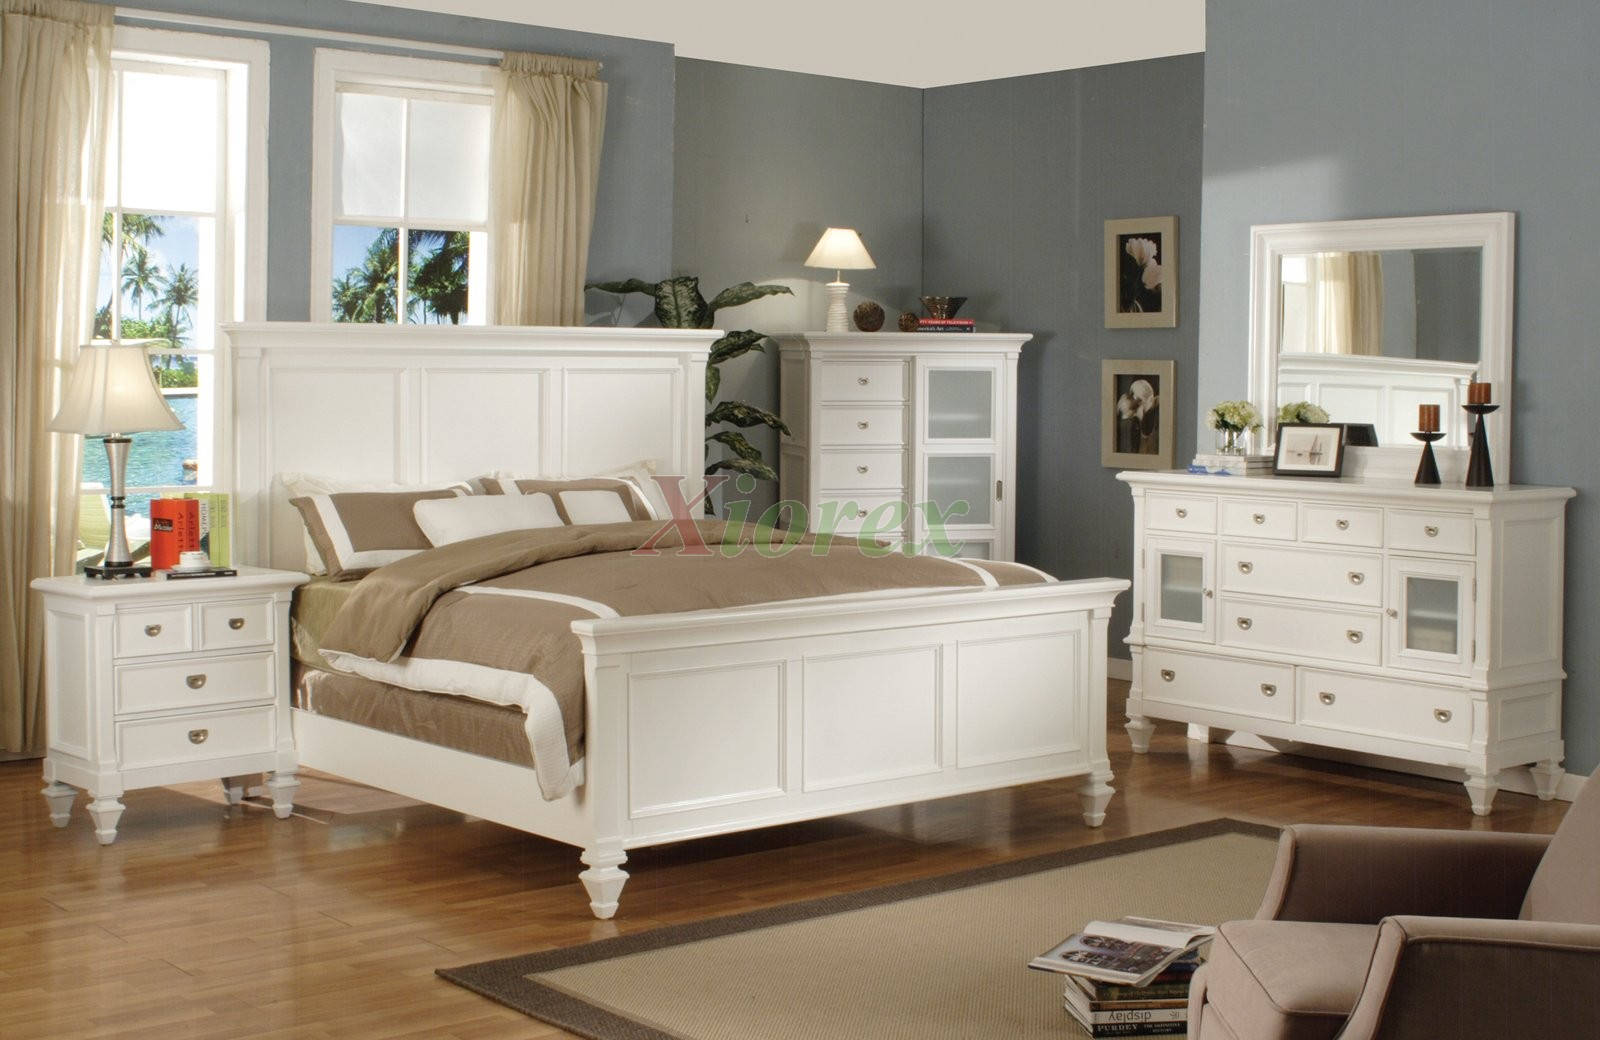 bedroom furniture set 126 xiorex. Black Bedroom Furniture Sets. Home Design Ideas